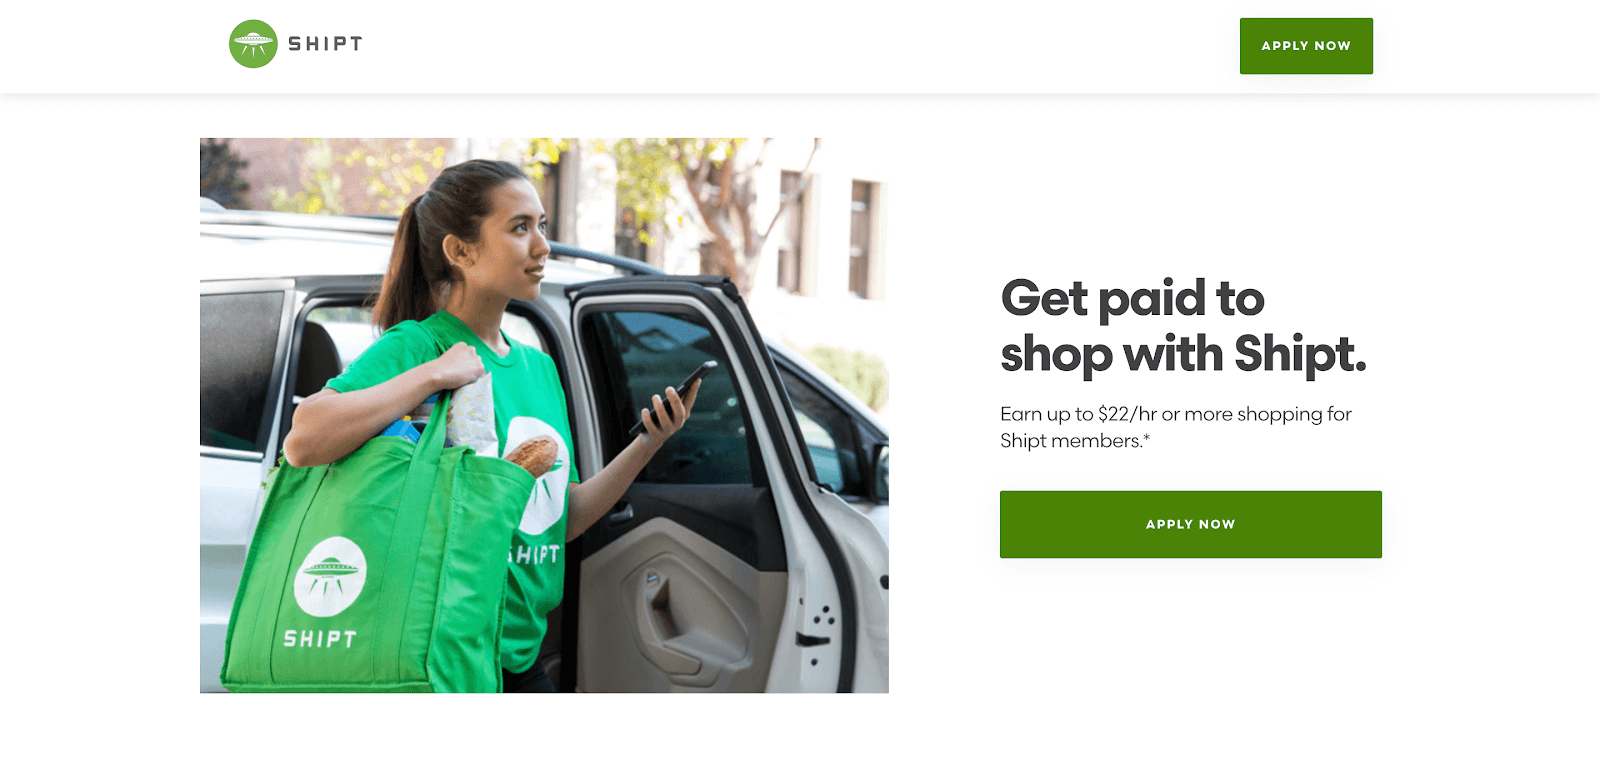 Shipt shopper: the webpage to apply to be a shopper